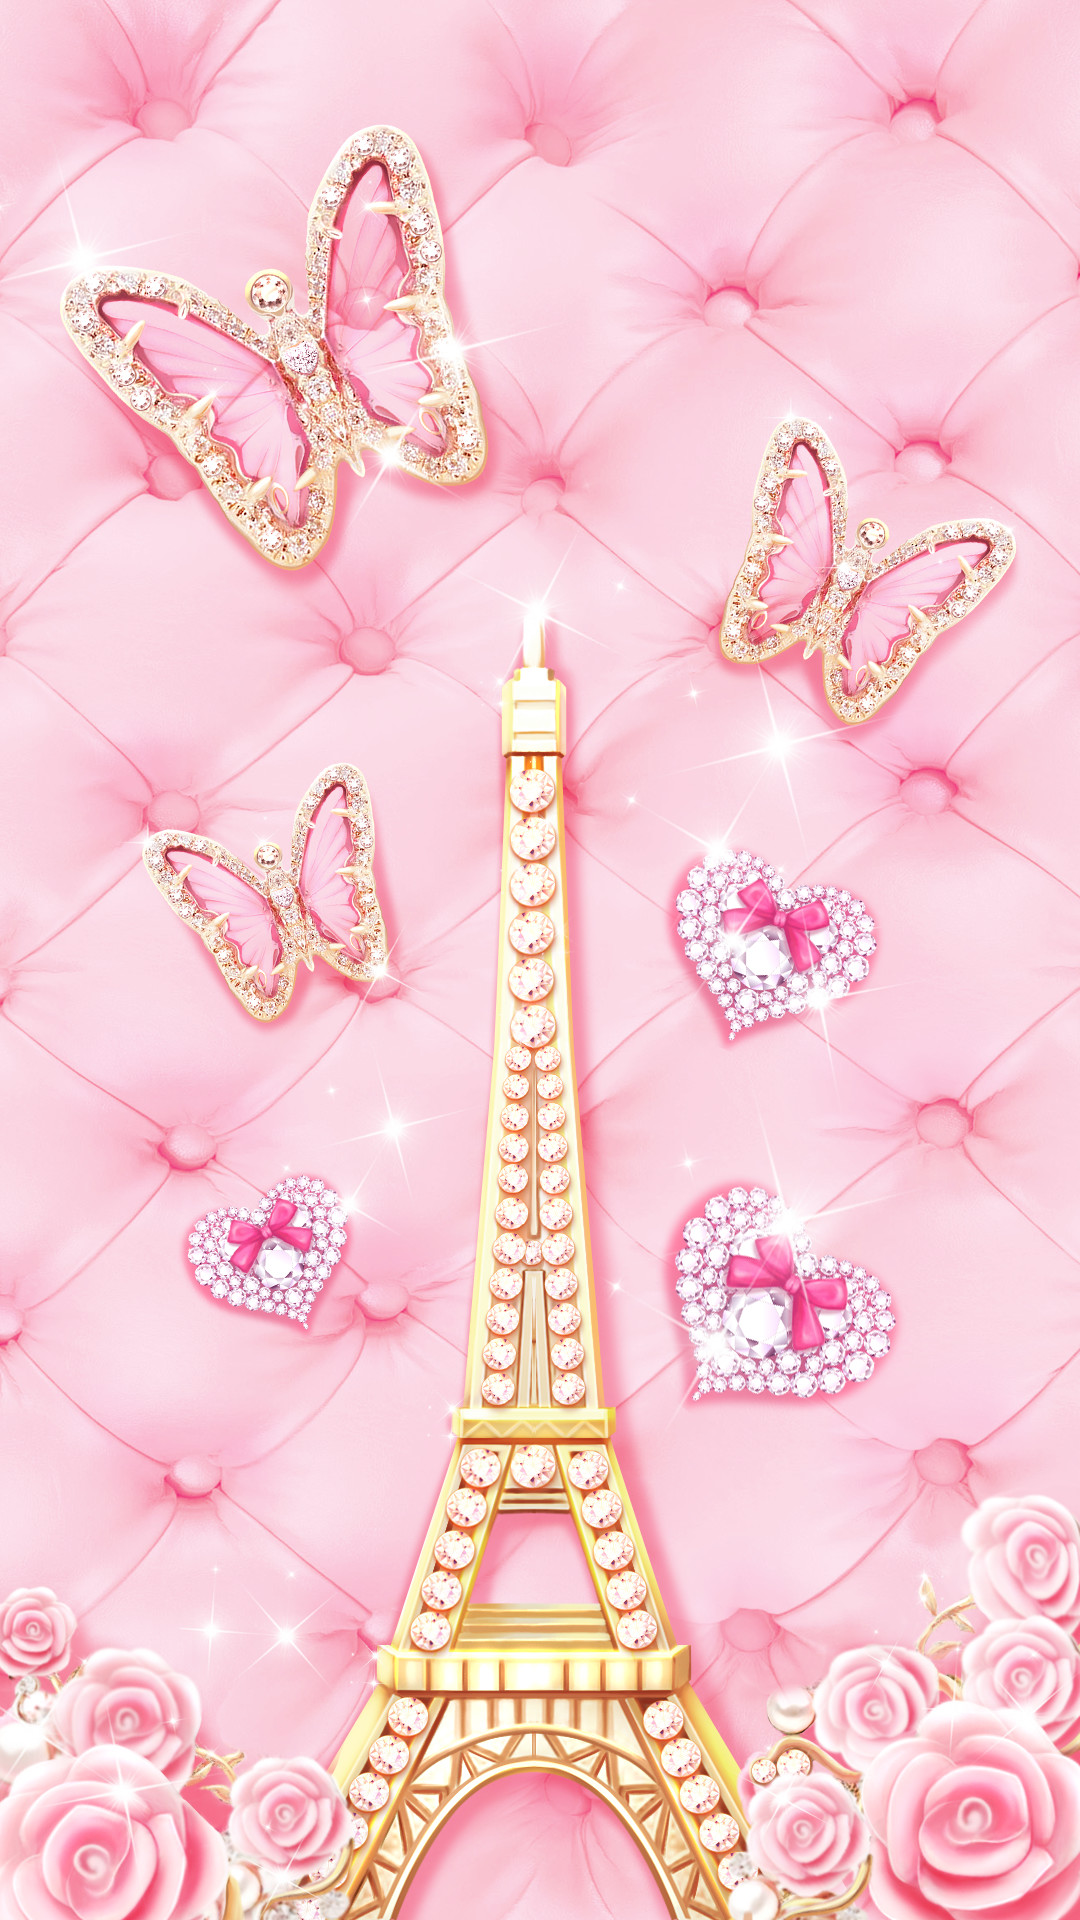 Cute Pink Wallpapers for iPhone 83 images